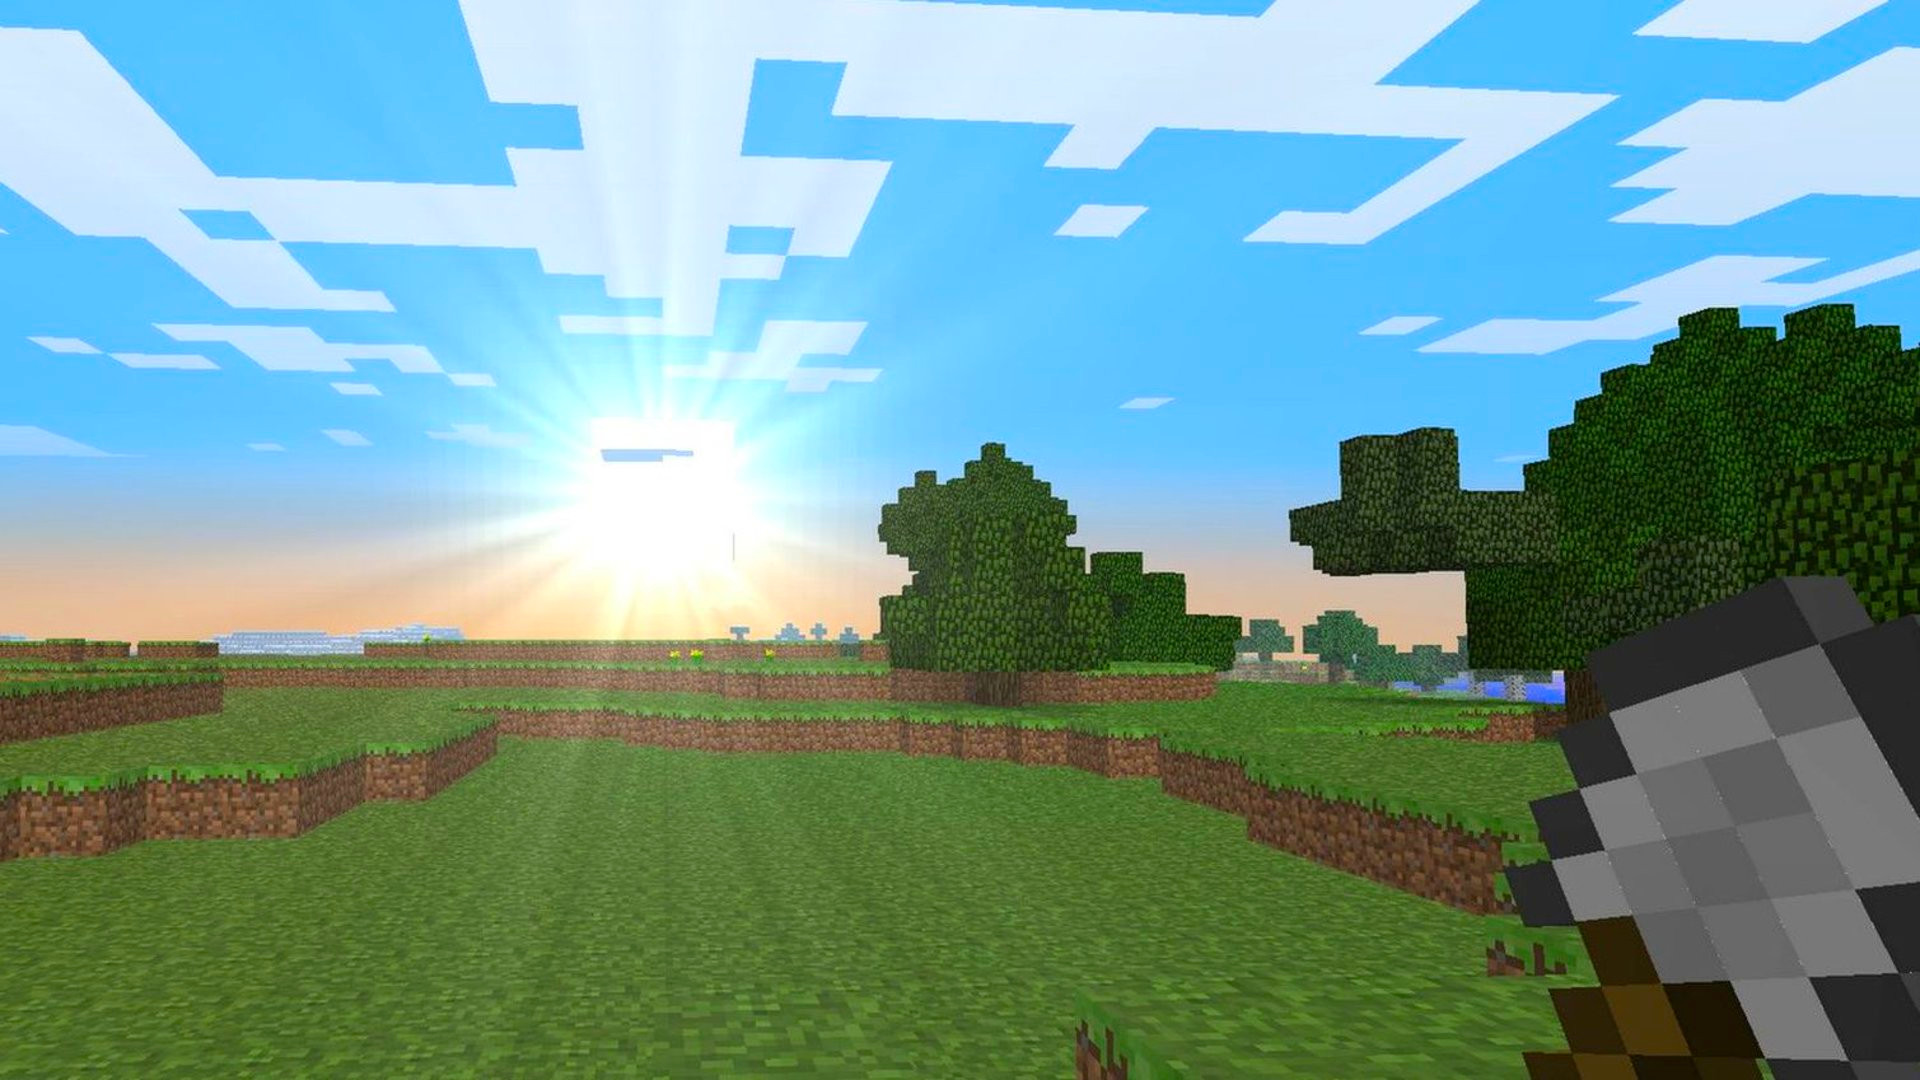 50 Percent Of All Minecraft Java Players Visited A Specific Server Games 4 Geeks